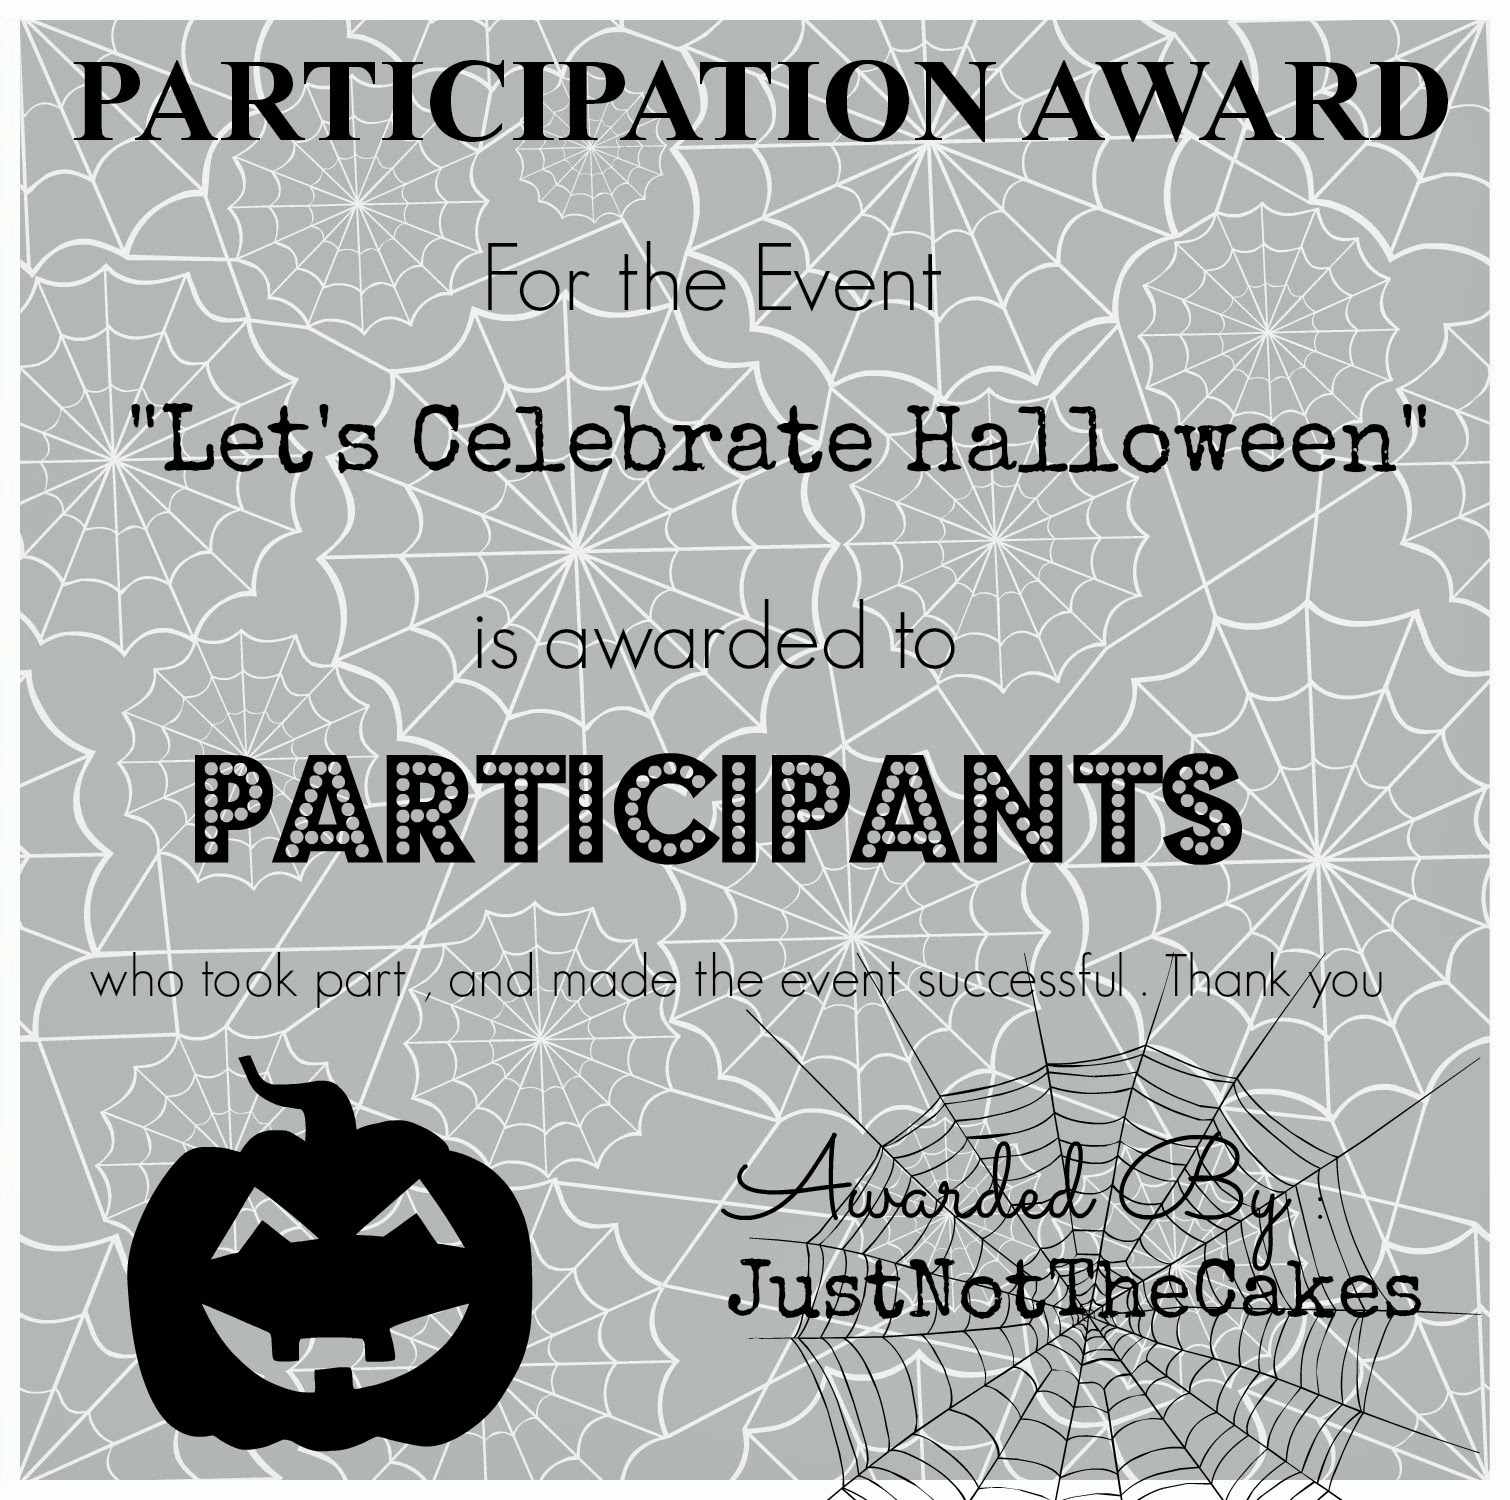 Just not the cakes awards for the event lets celebrate halloween best photography award goes to gal on a mission for halloween green slime cupcakes those cupcakes are super tempting with all those colorful sprinkles yadclub Image collections